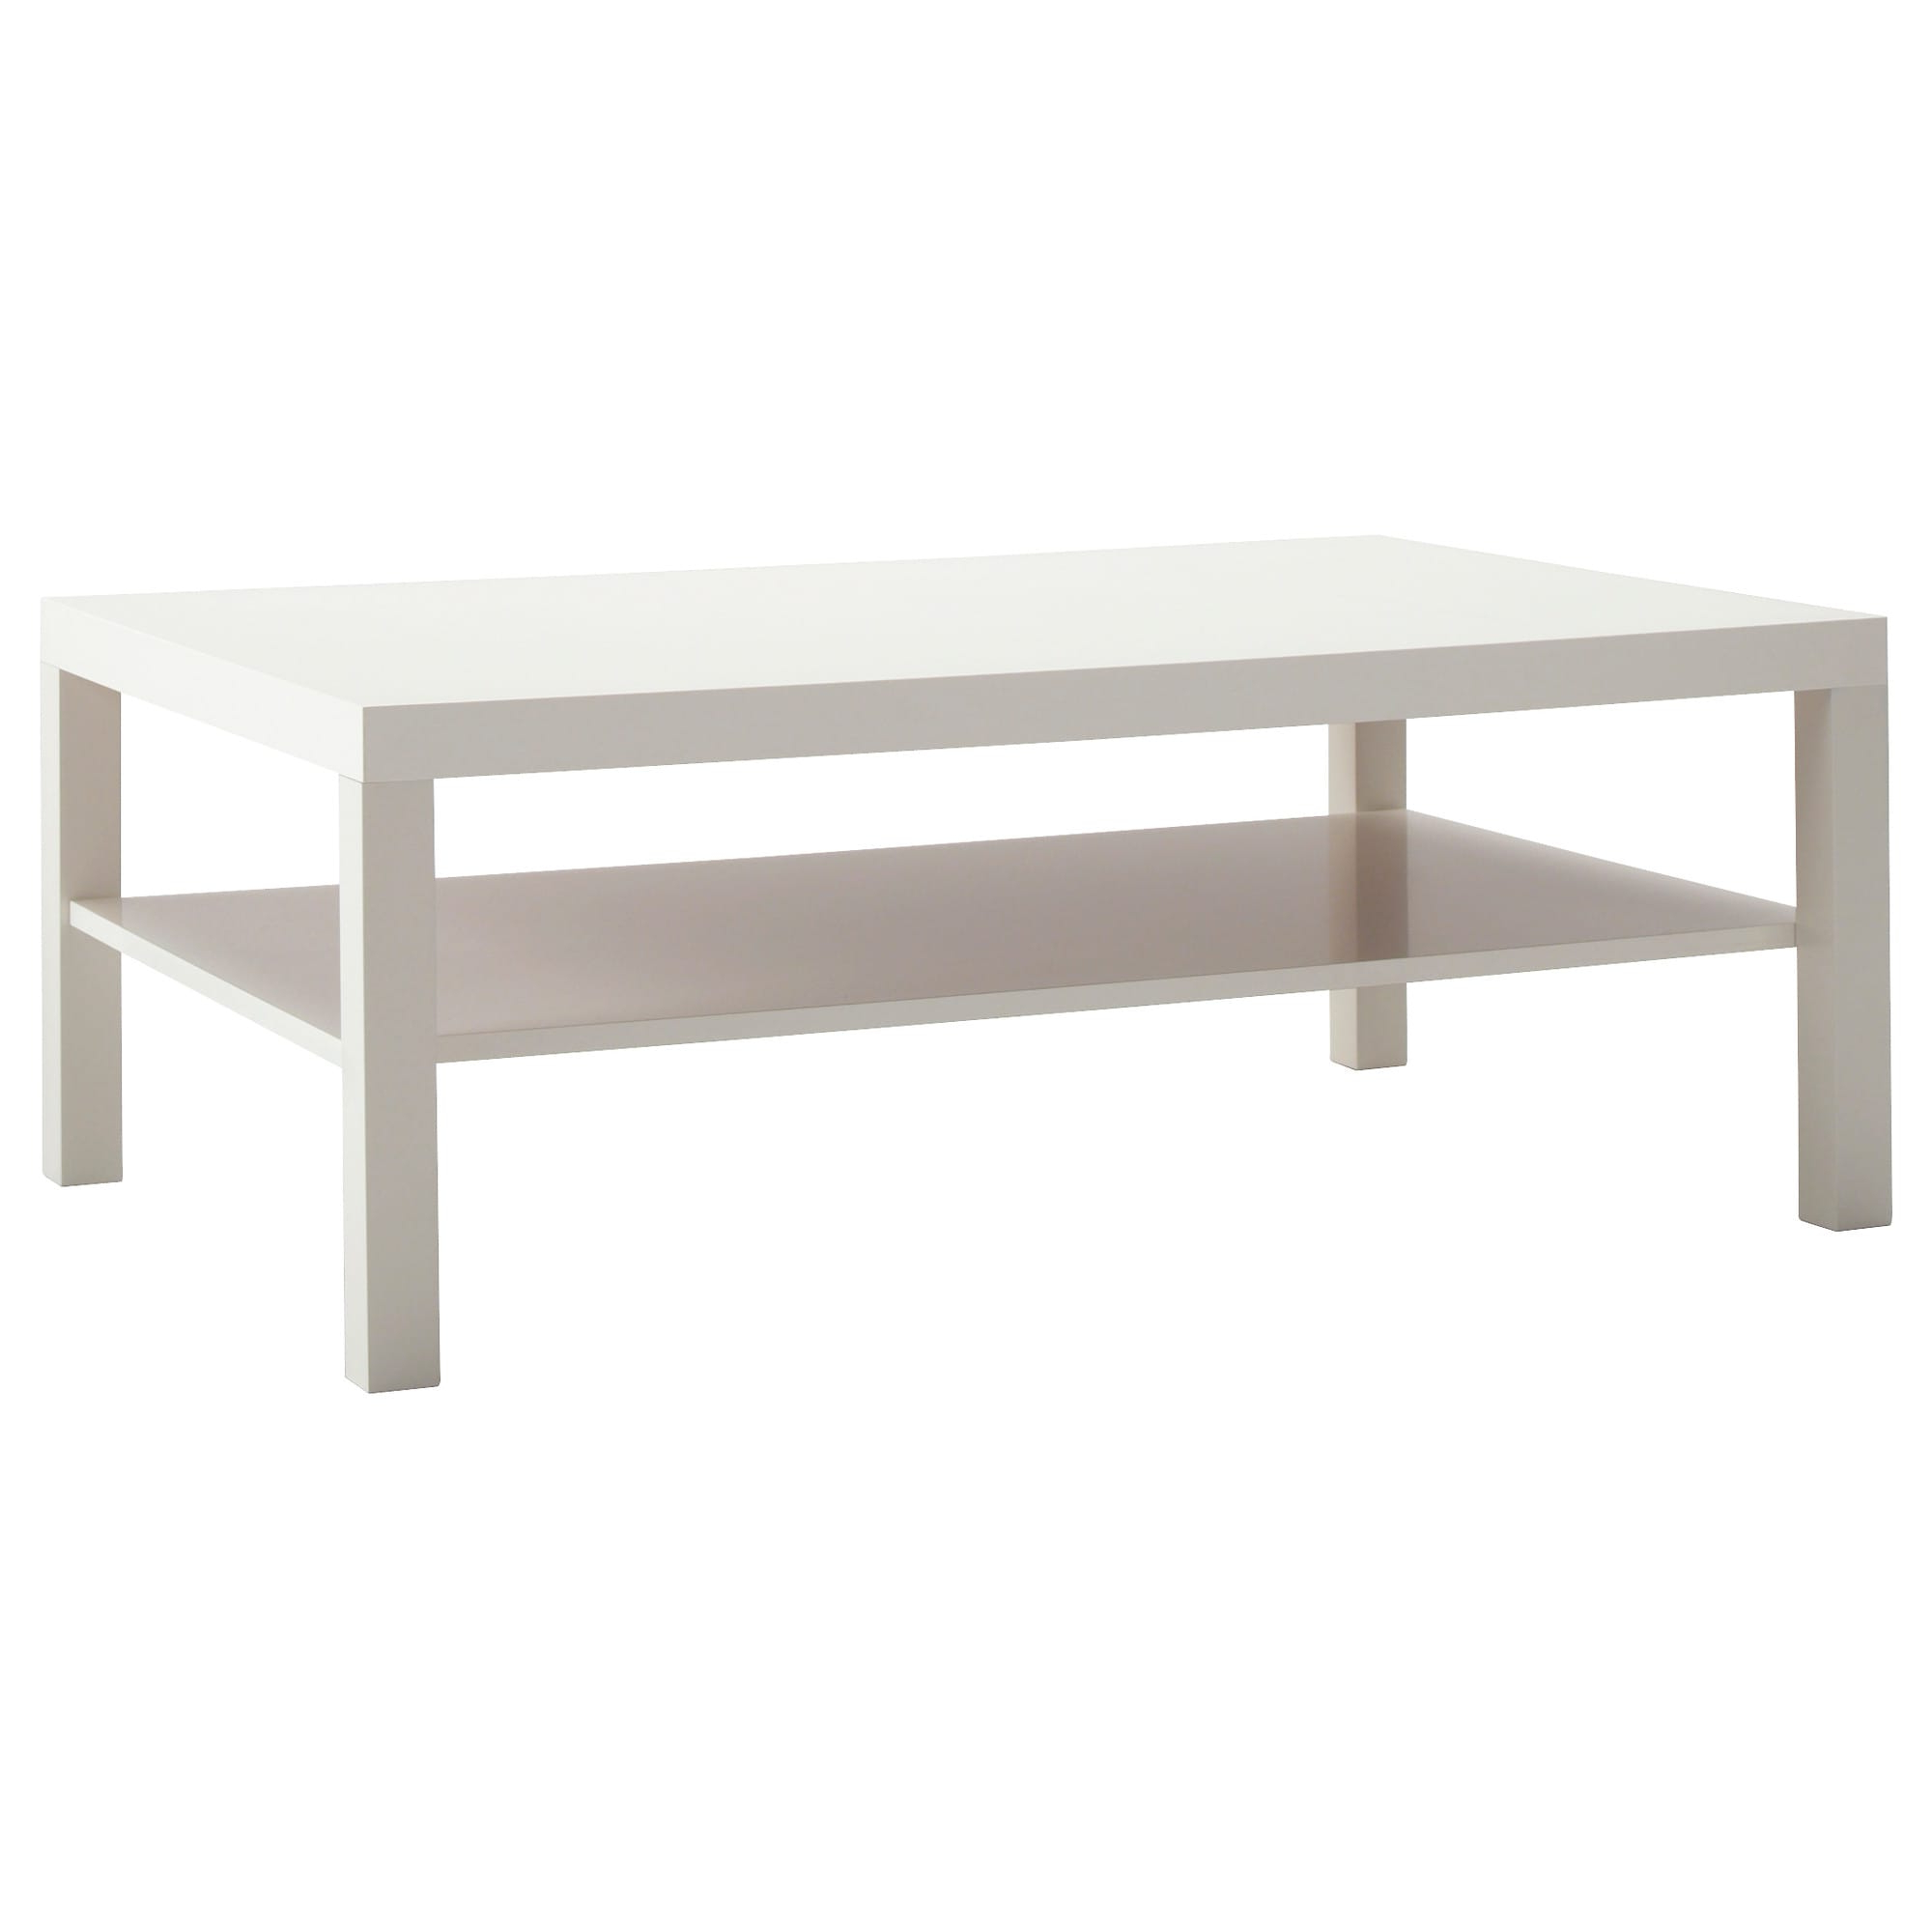 Square Waterfall Coffee Tables Regarding 2018 Lack Coffee Table – White – Ikea (Gallery 17 of 20)